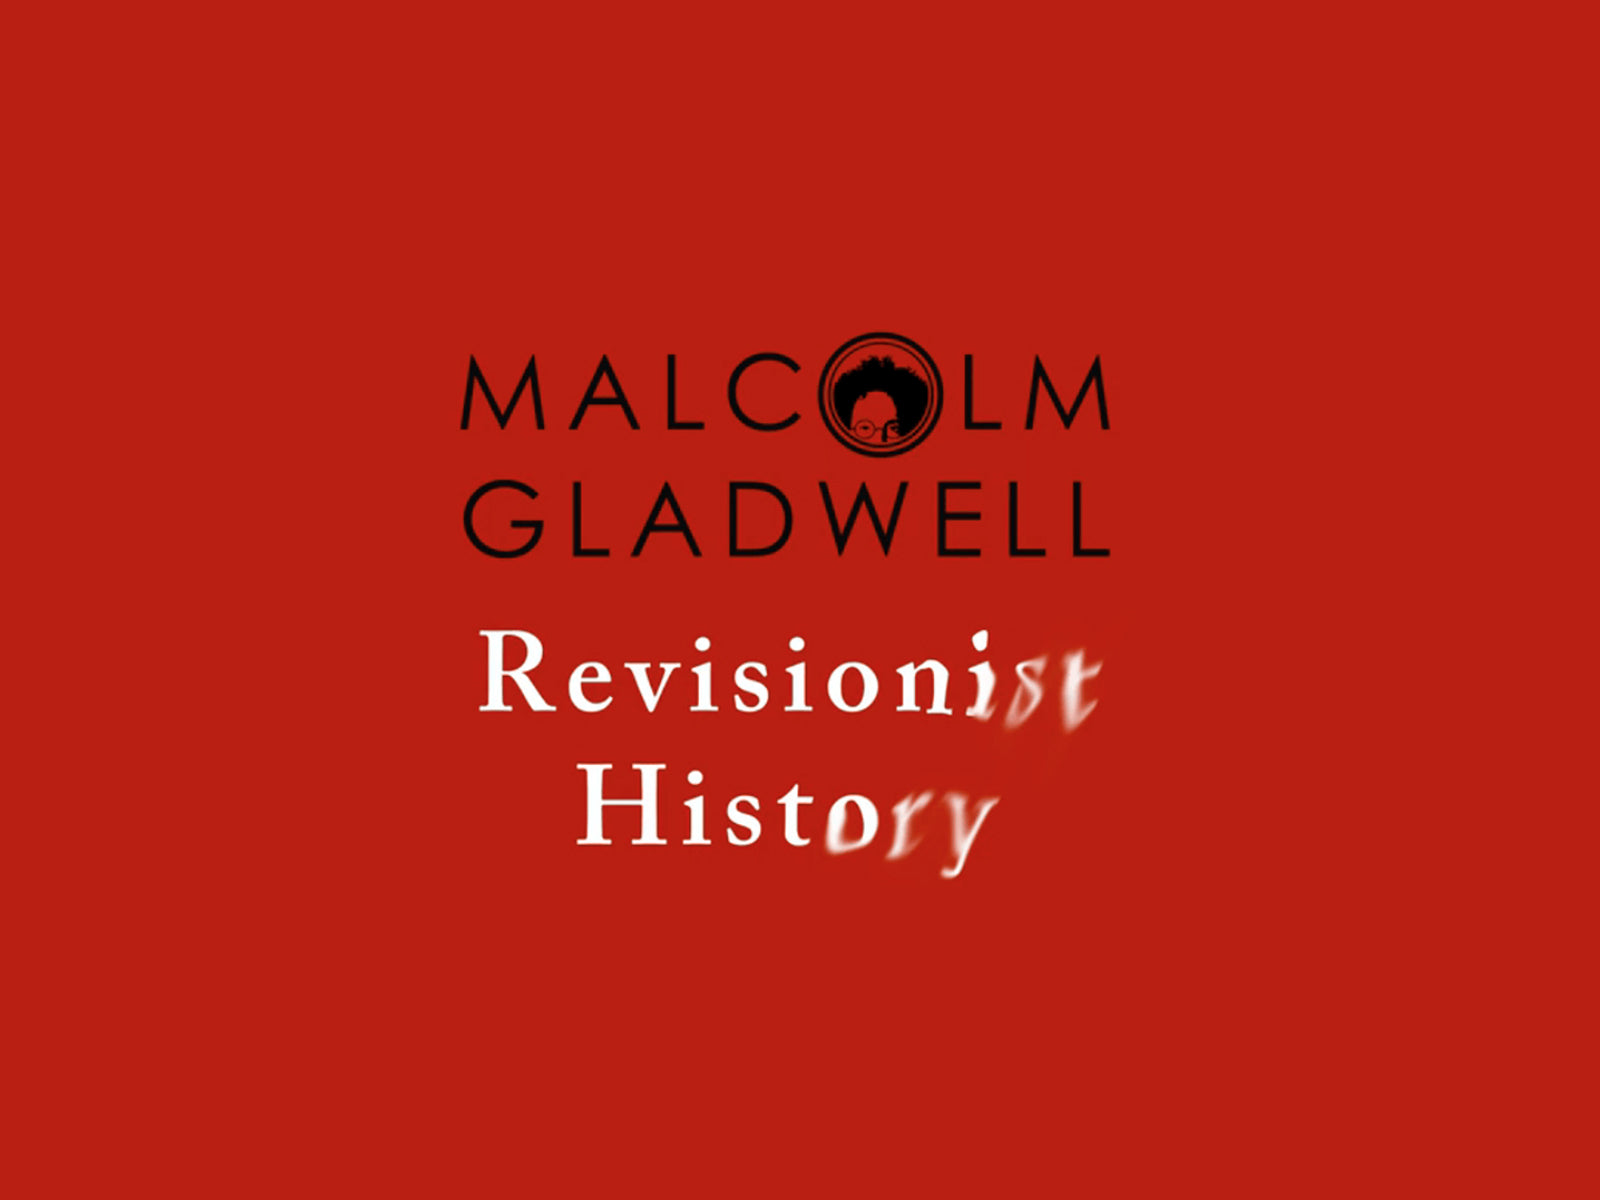 Malcolm Gladwell - Revisionist History Podcast